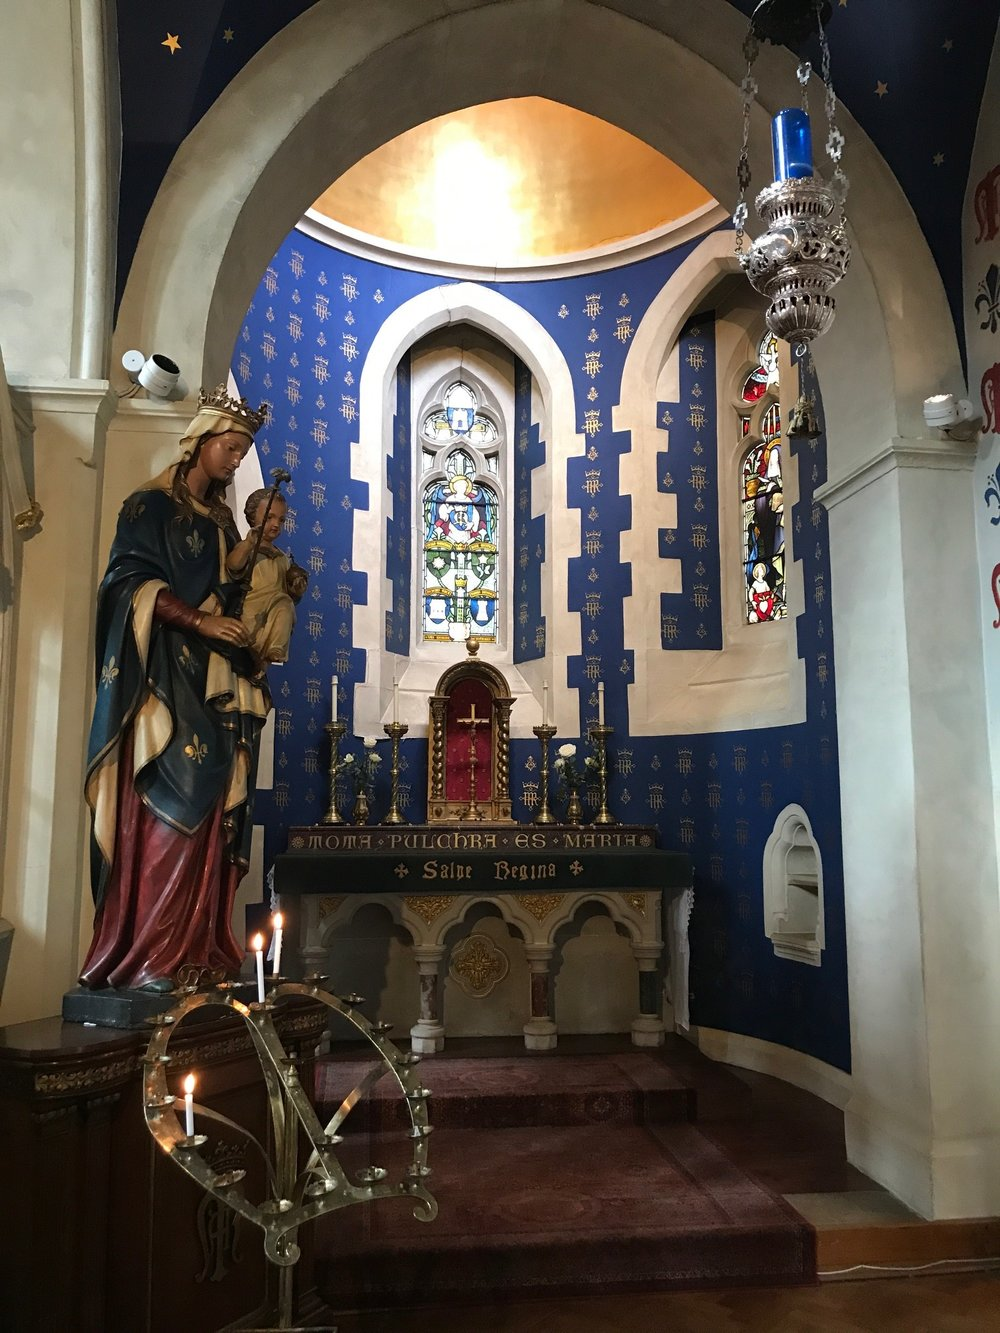 The Lady Chapel, The Oratory